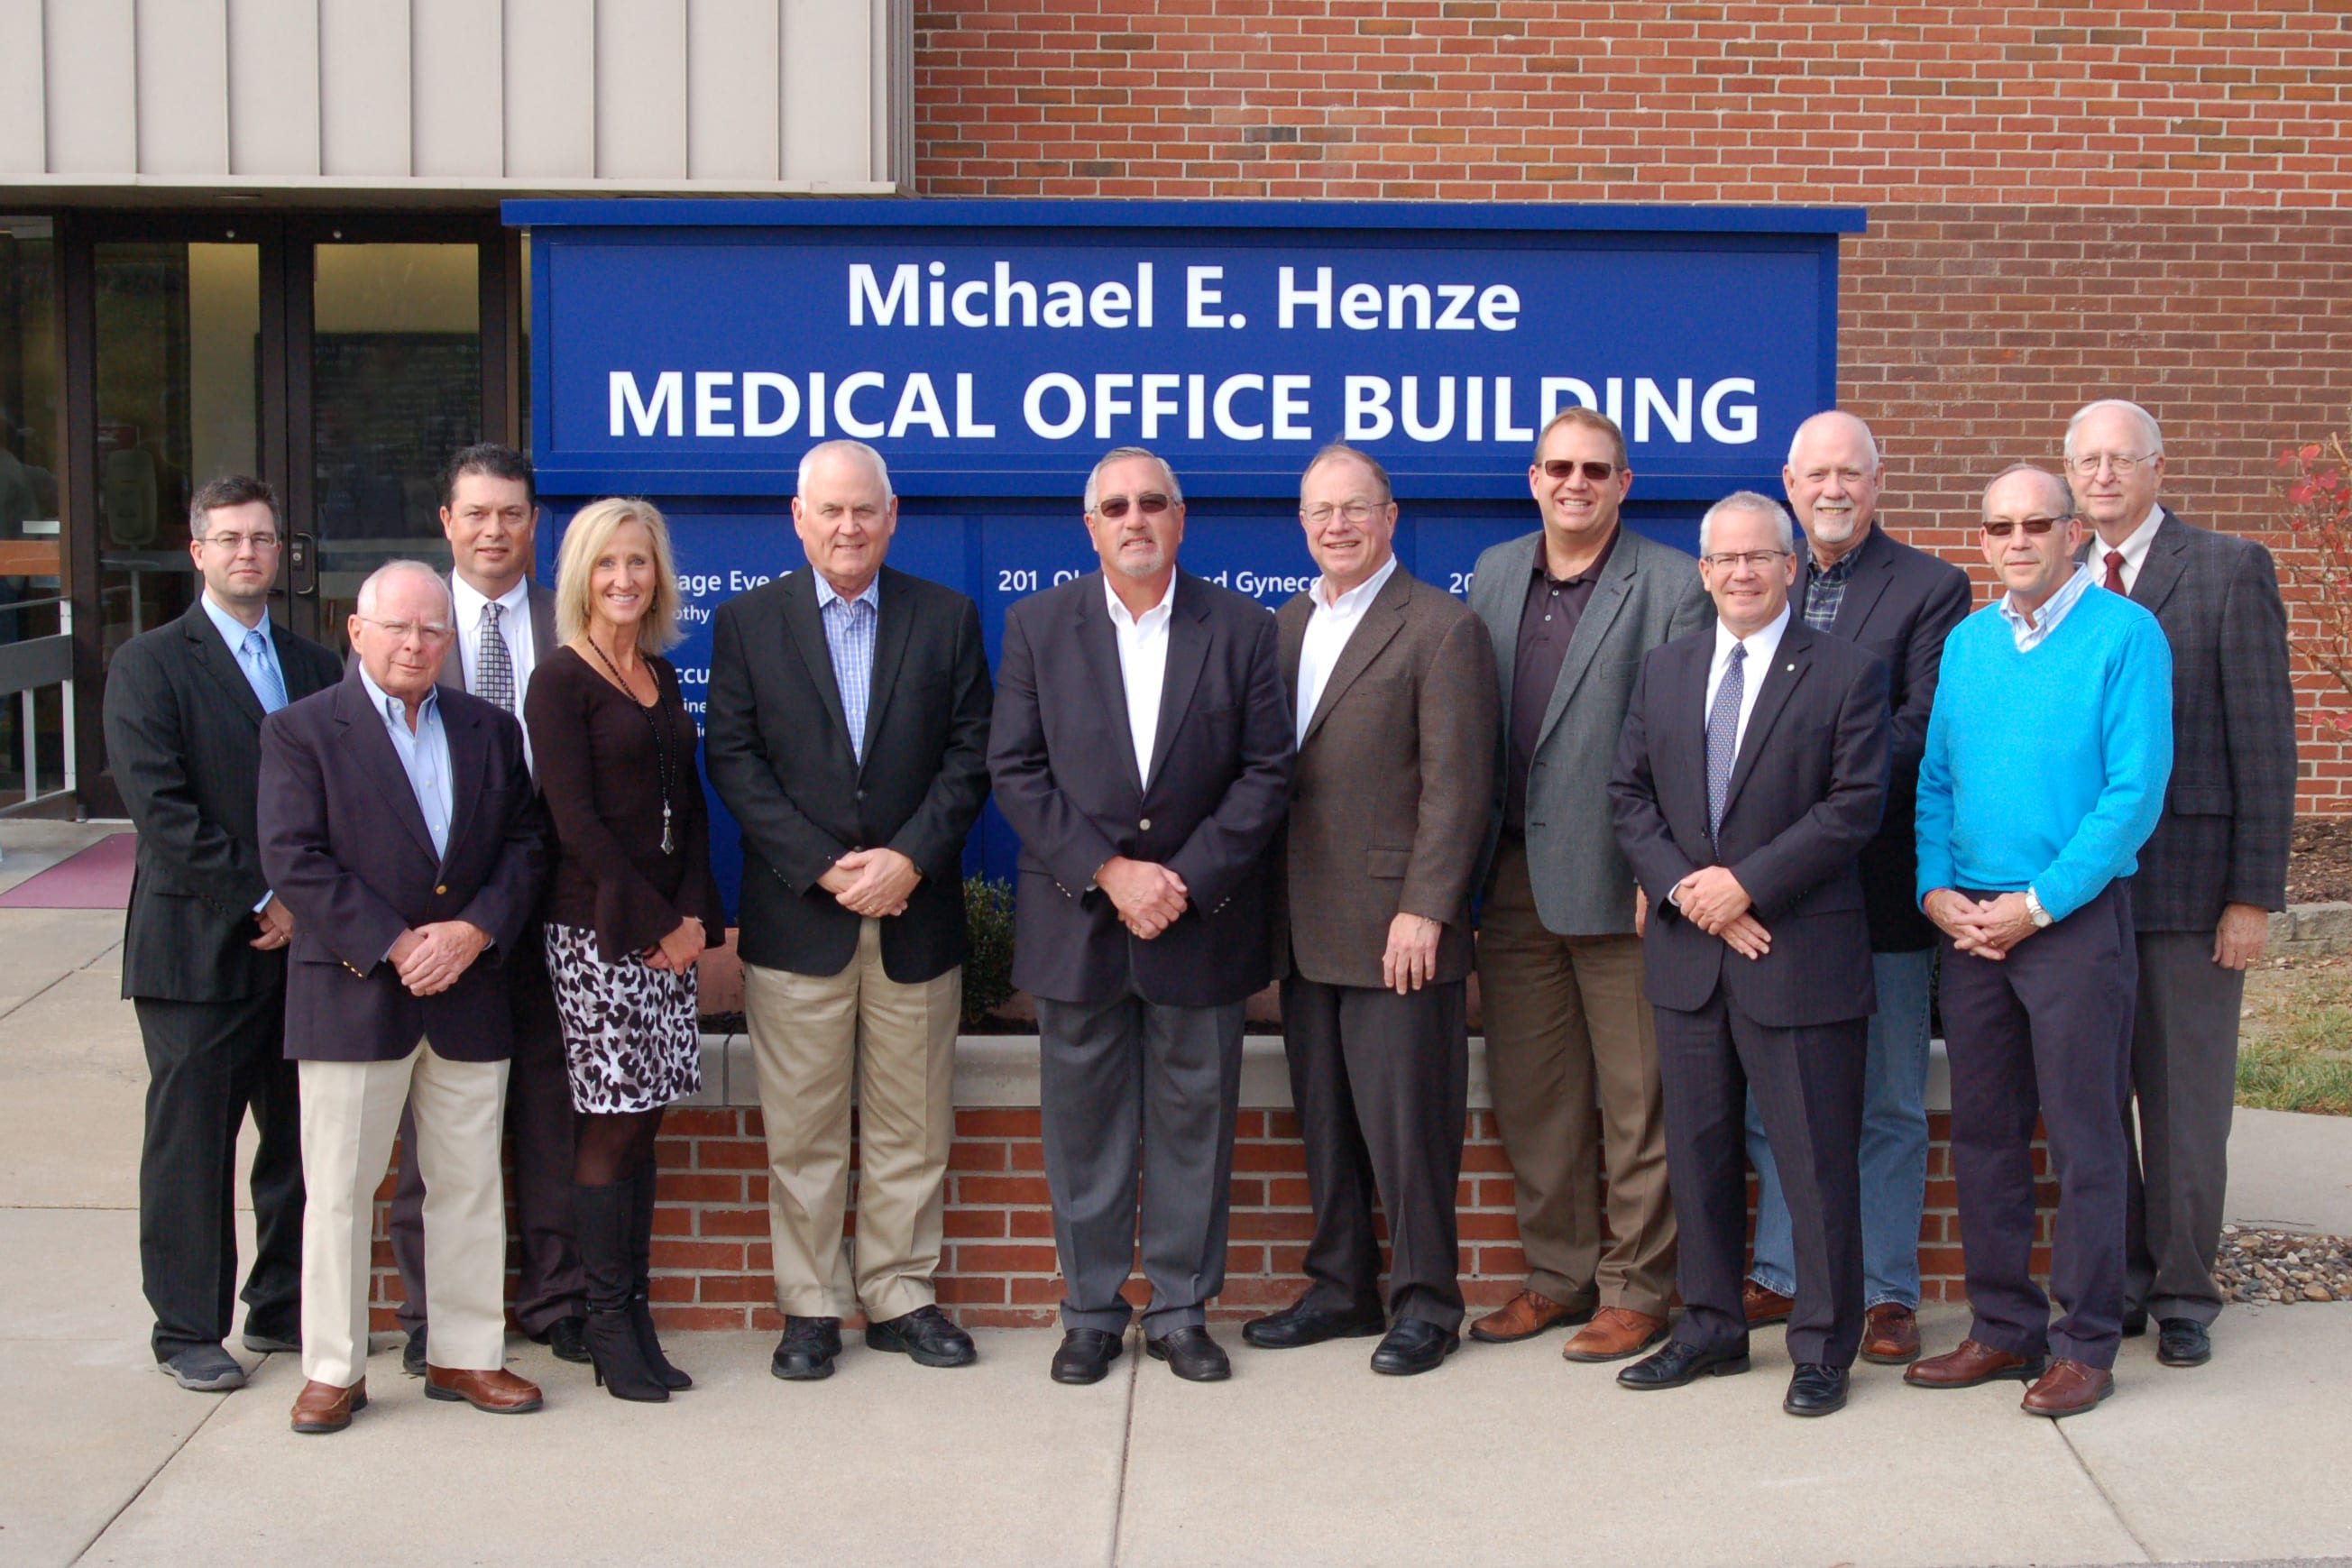 Michael E. Henze, center, stands with members of the Lake Regional Health System Board of Directors. Left to right are John Patton, D.O., FACOS; Larry Shields; Alan Mead, M.D.; Karen Faiferlick; Wayne Compton; Henze; Robert Schwendinger; Corey ten Bensel; James Judas; Charles McElyea; John Caine; and John Parrish.